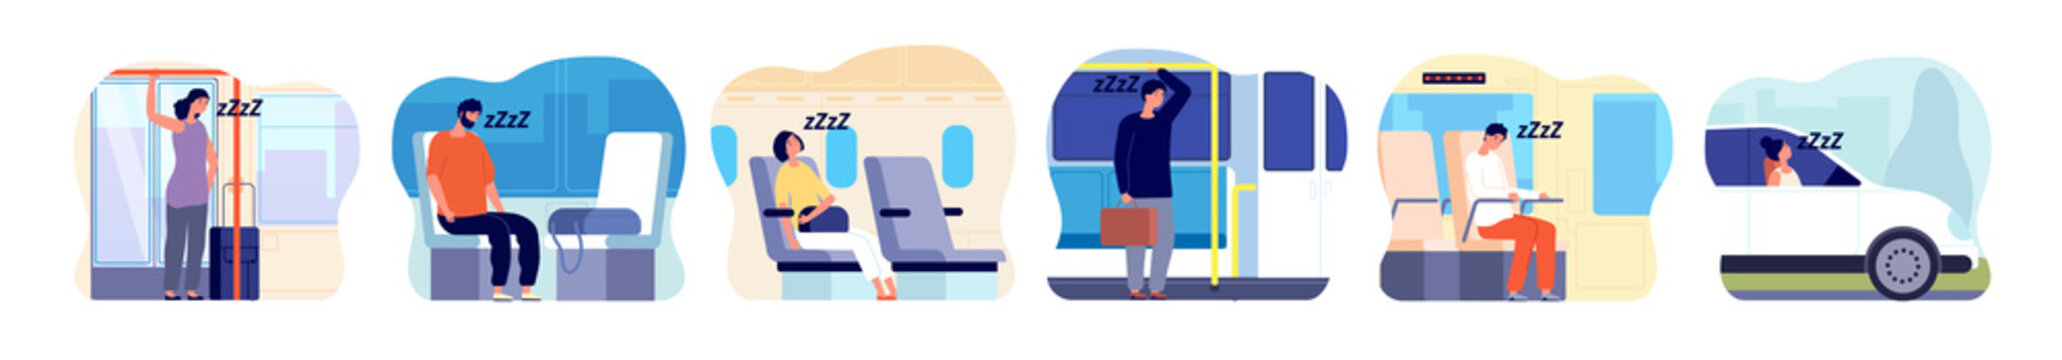 Tired people in transport. Morning woman, sad man in public bus, train. Person sleep on driving, sleepy adult work utter vector concept. Illustration people sitting fatigue and sleep in transport